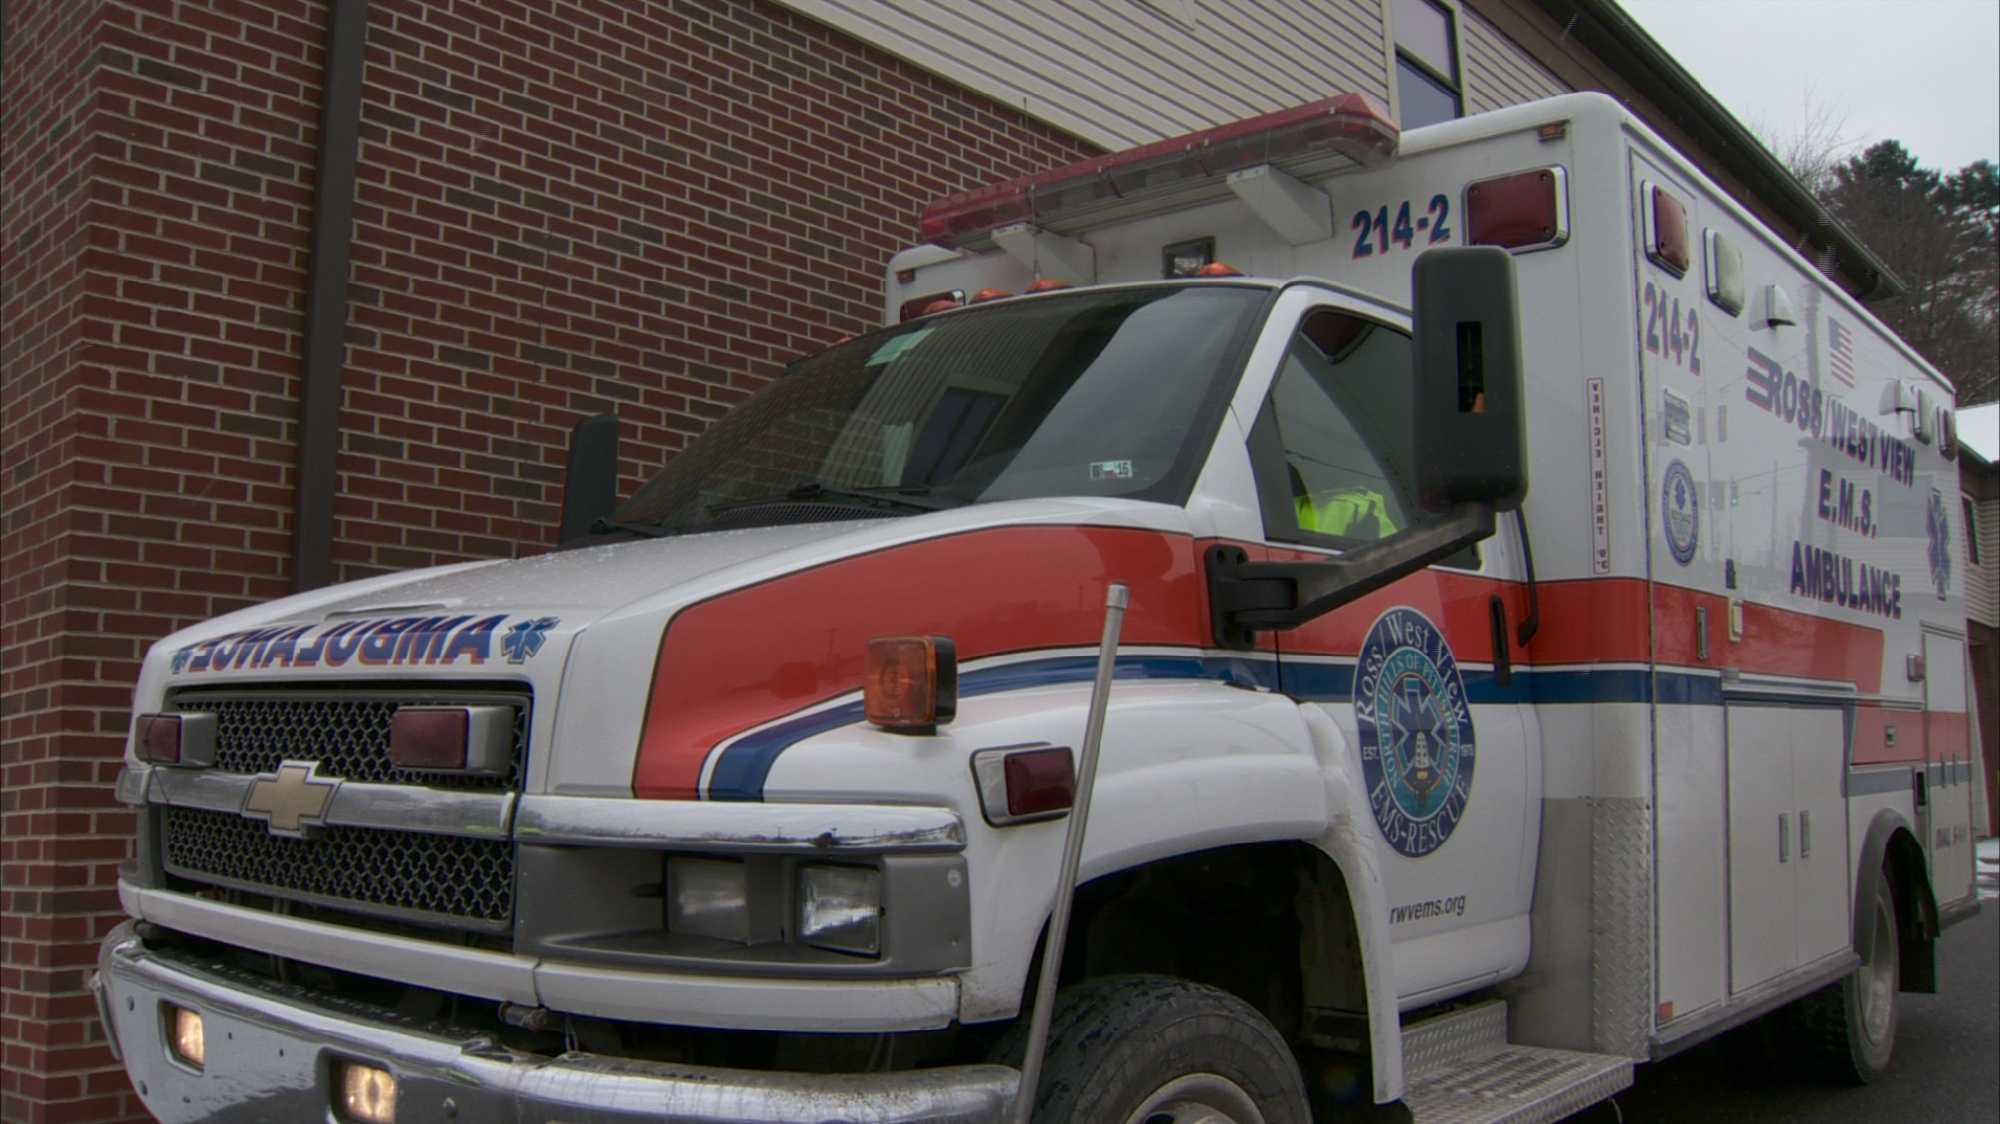 An ambulance from Ross/West View EMS.